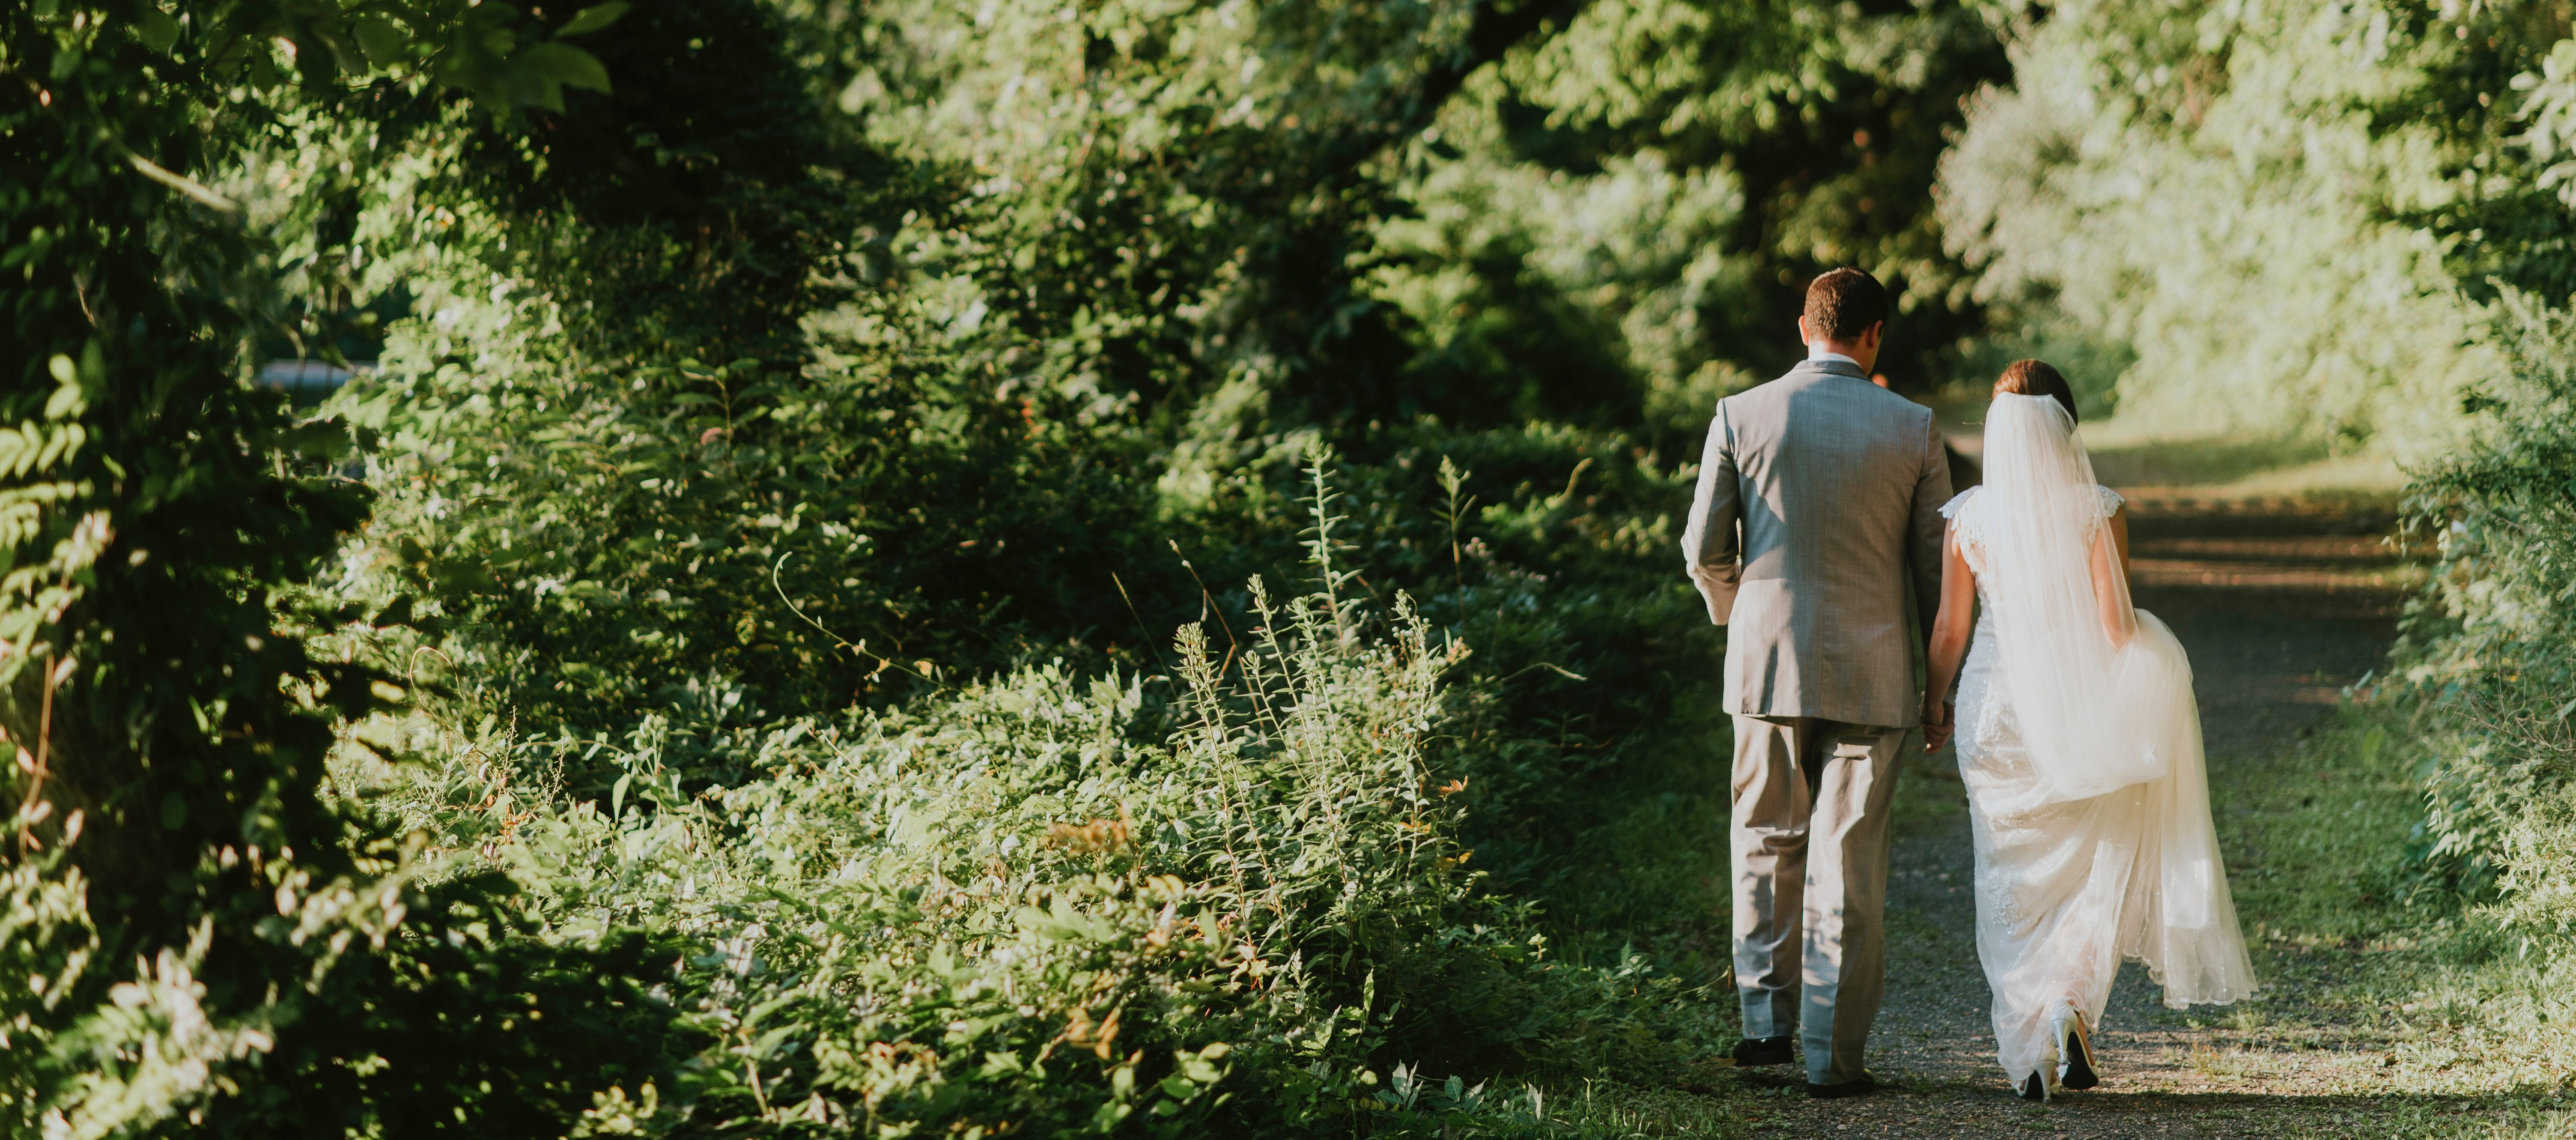 Green Wedding Planning Your Eco-Friendly Celebration